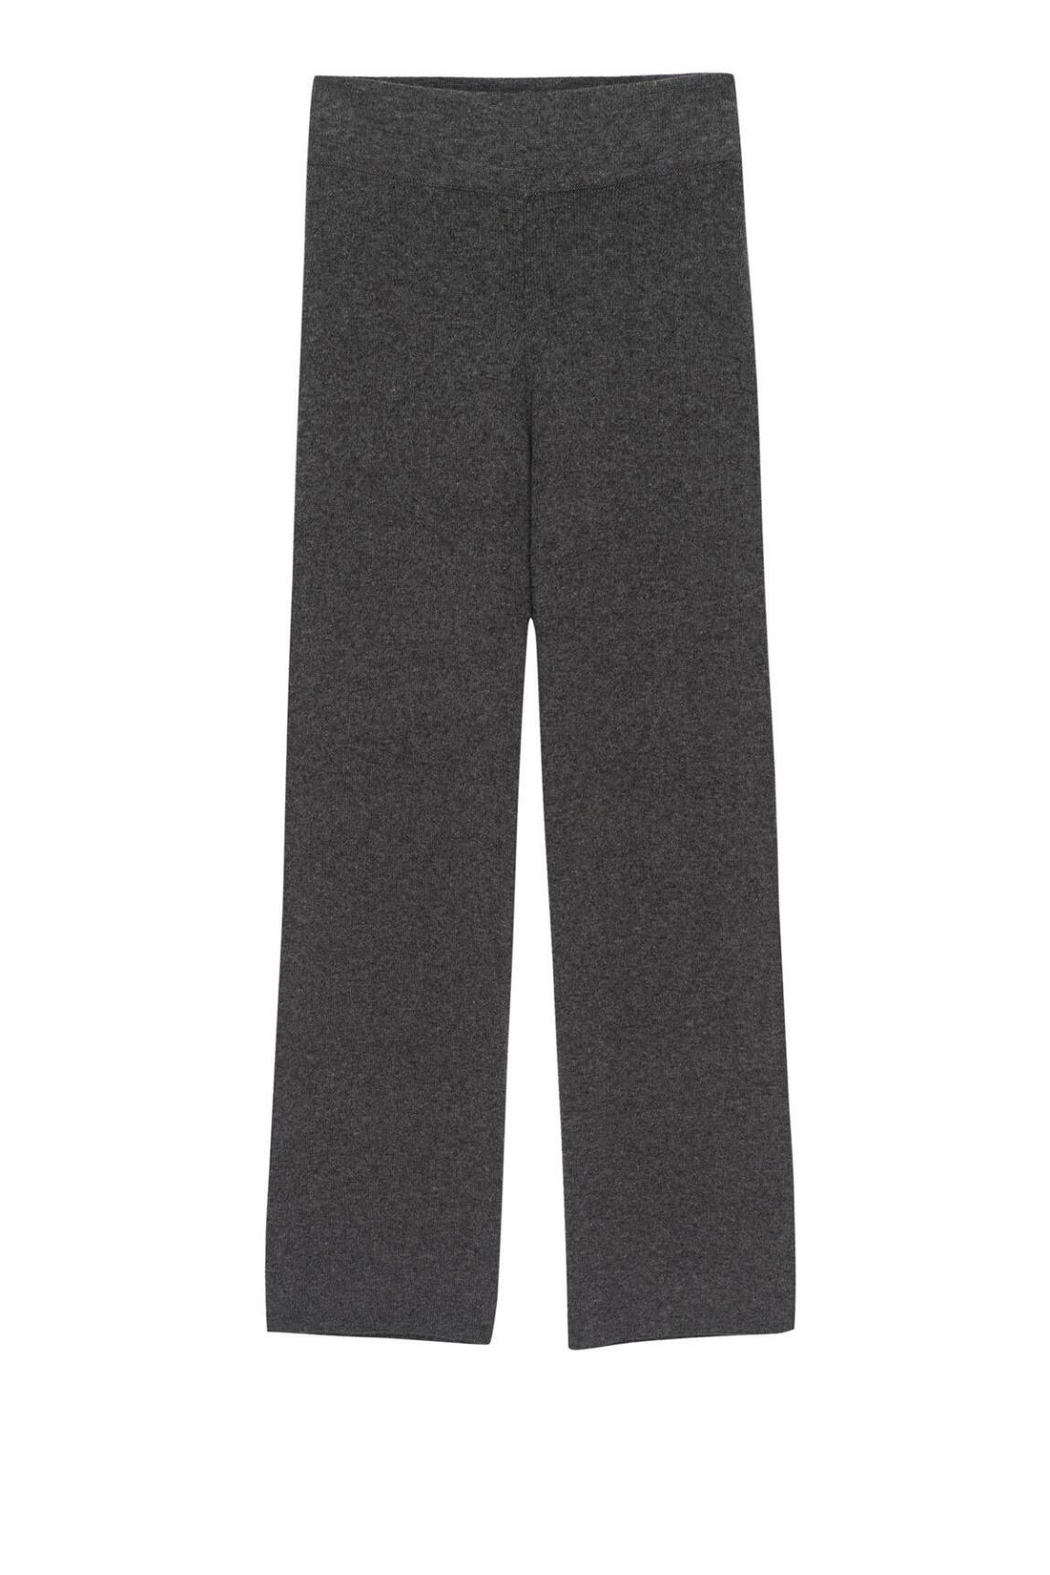 Bobeau Ripley Sweater Pant - Side Cropped Image